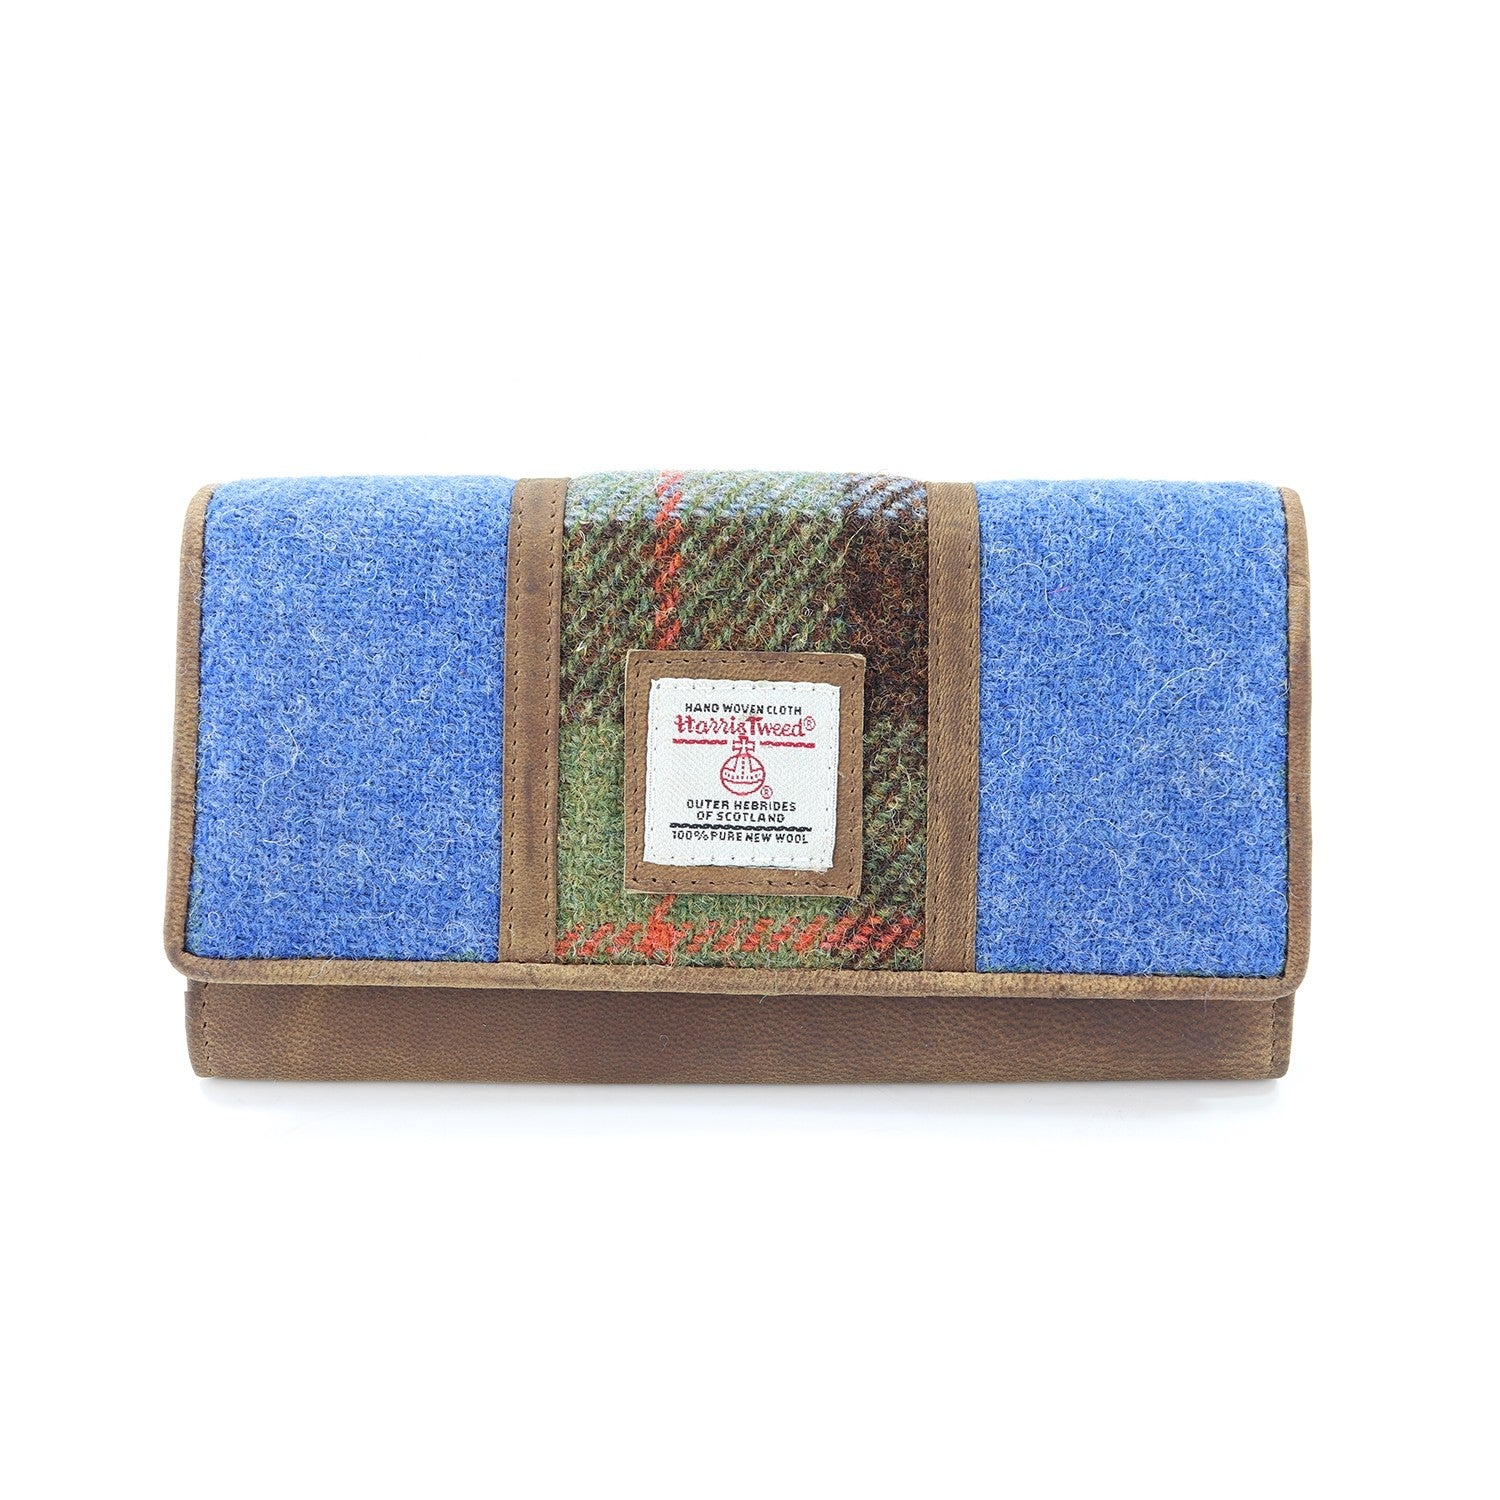 Harris Tweed Large Purse - Twin Colour Blue